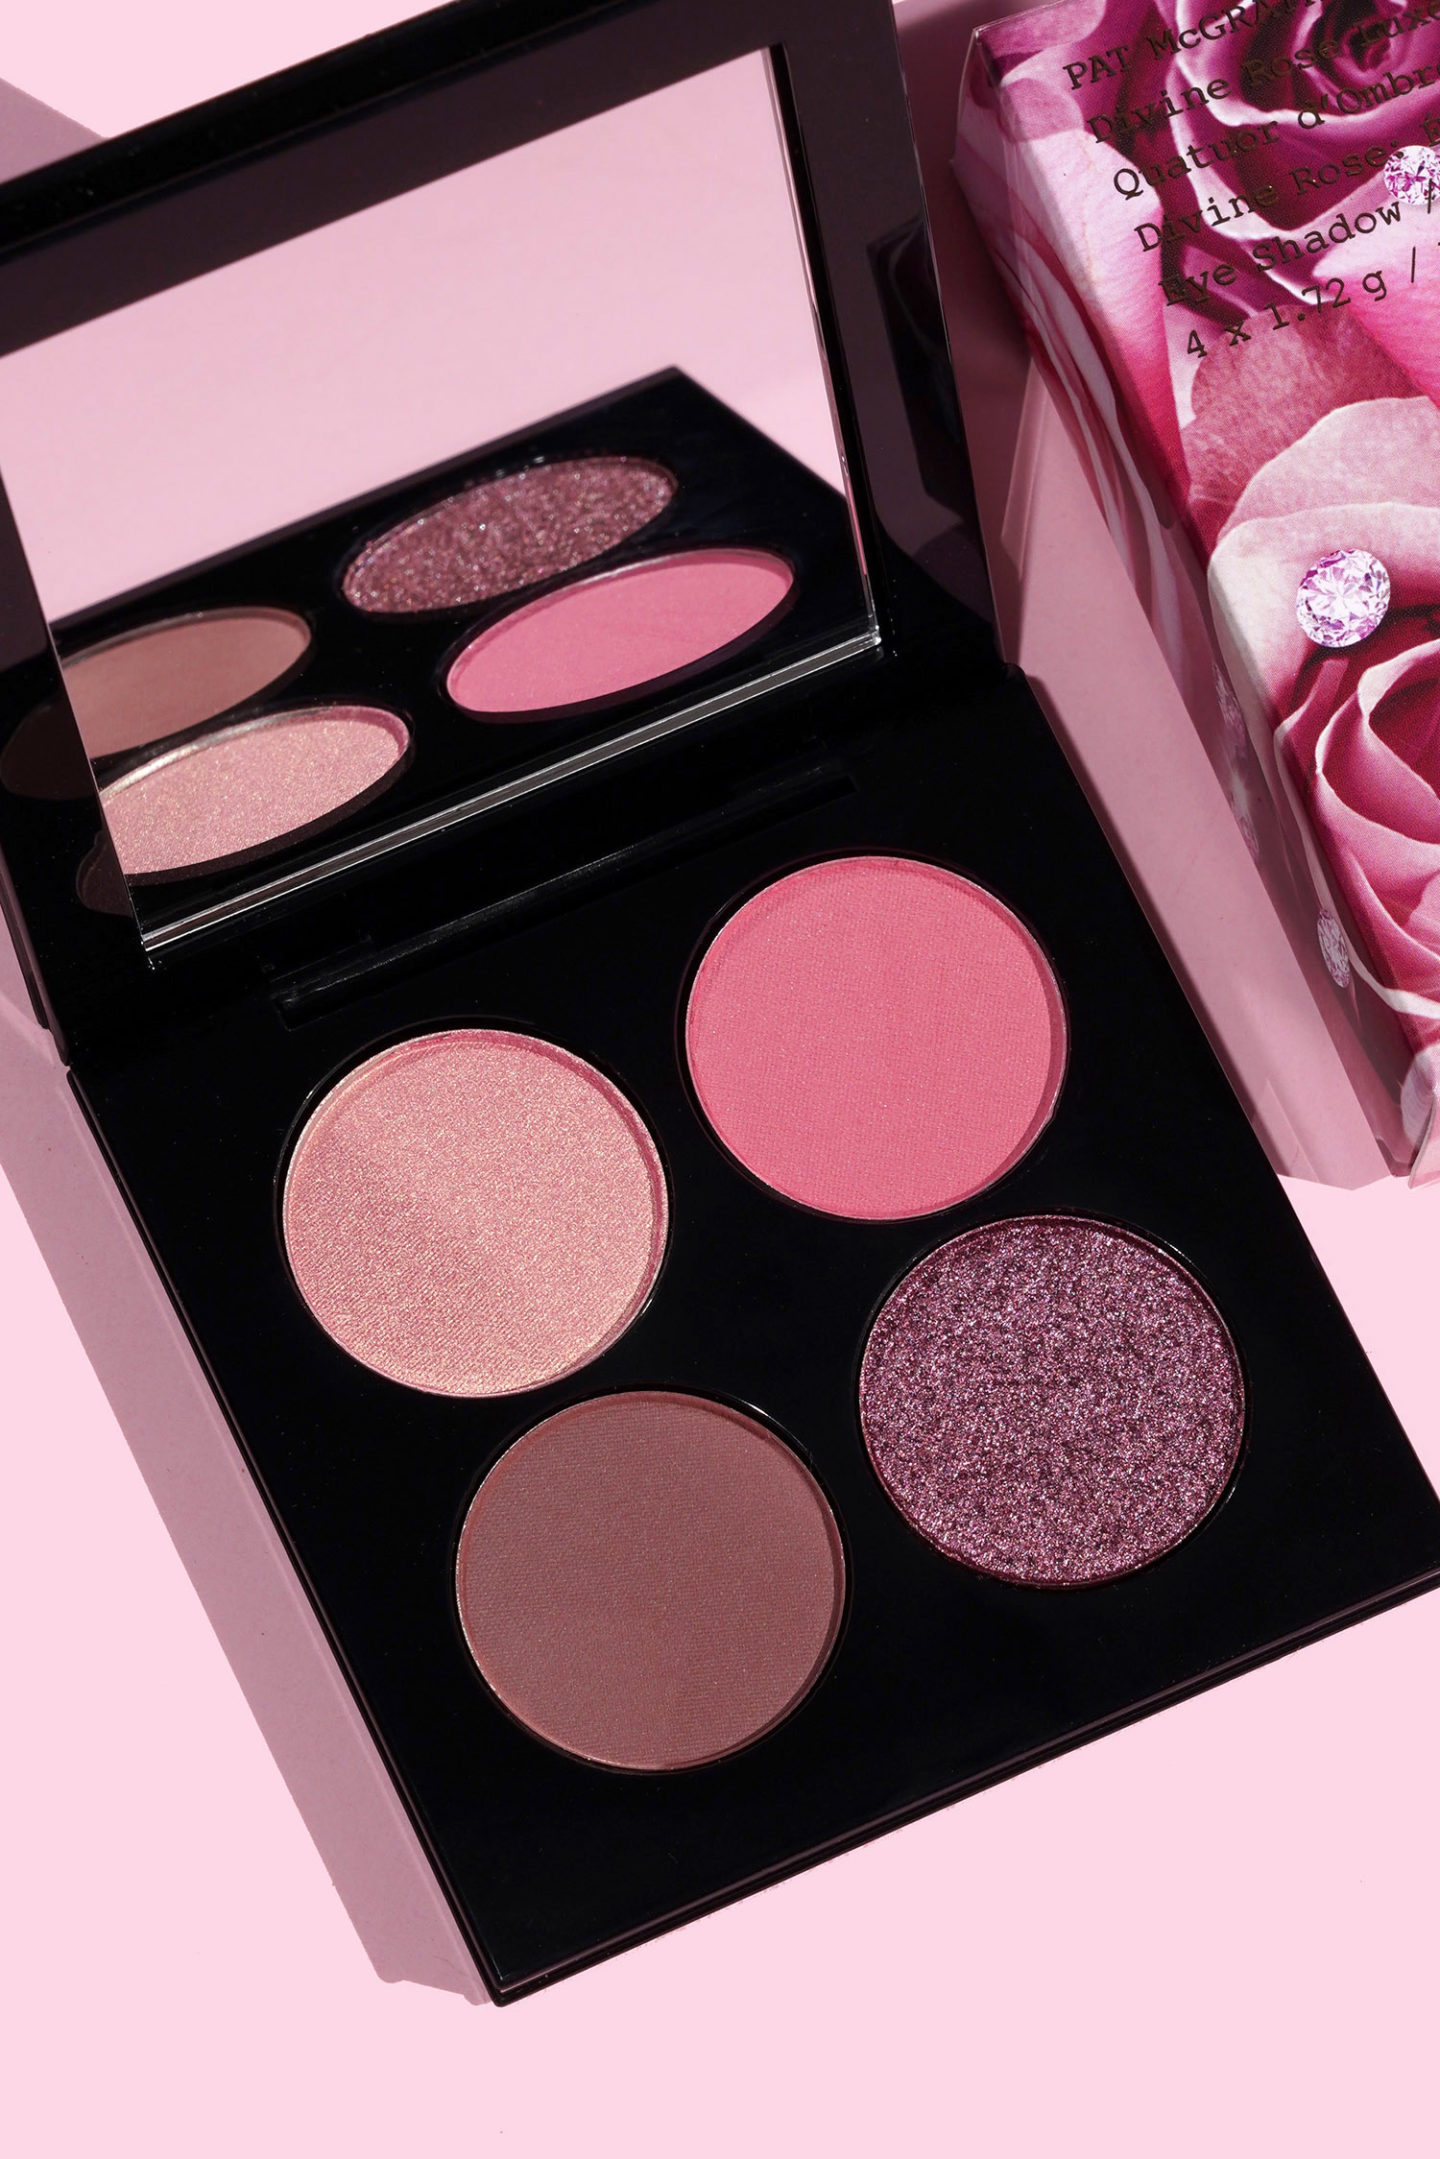 Pat McGrath Divine Rose Luxe Quad dans Eternal Eden